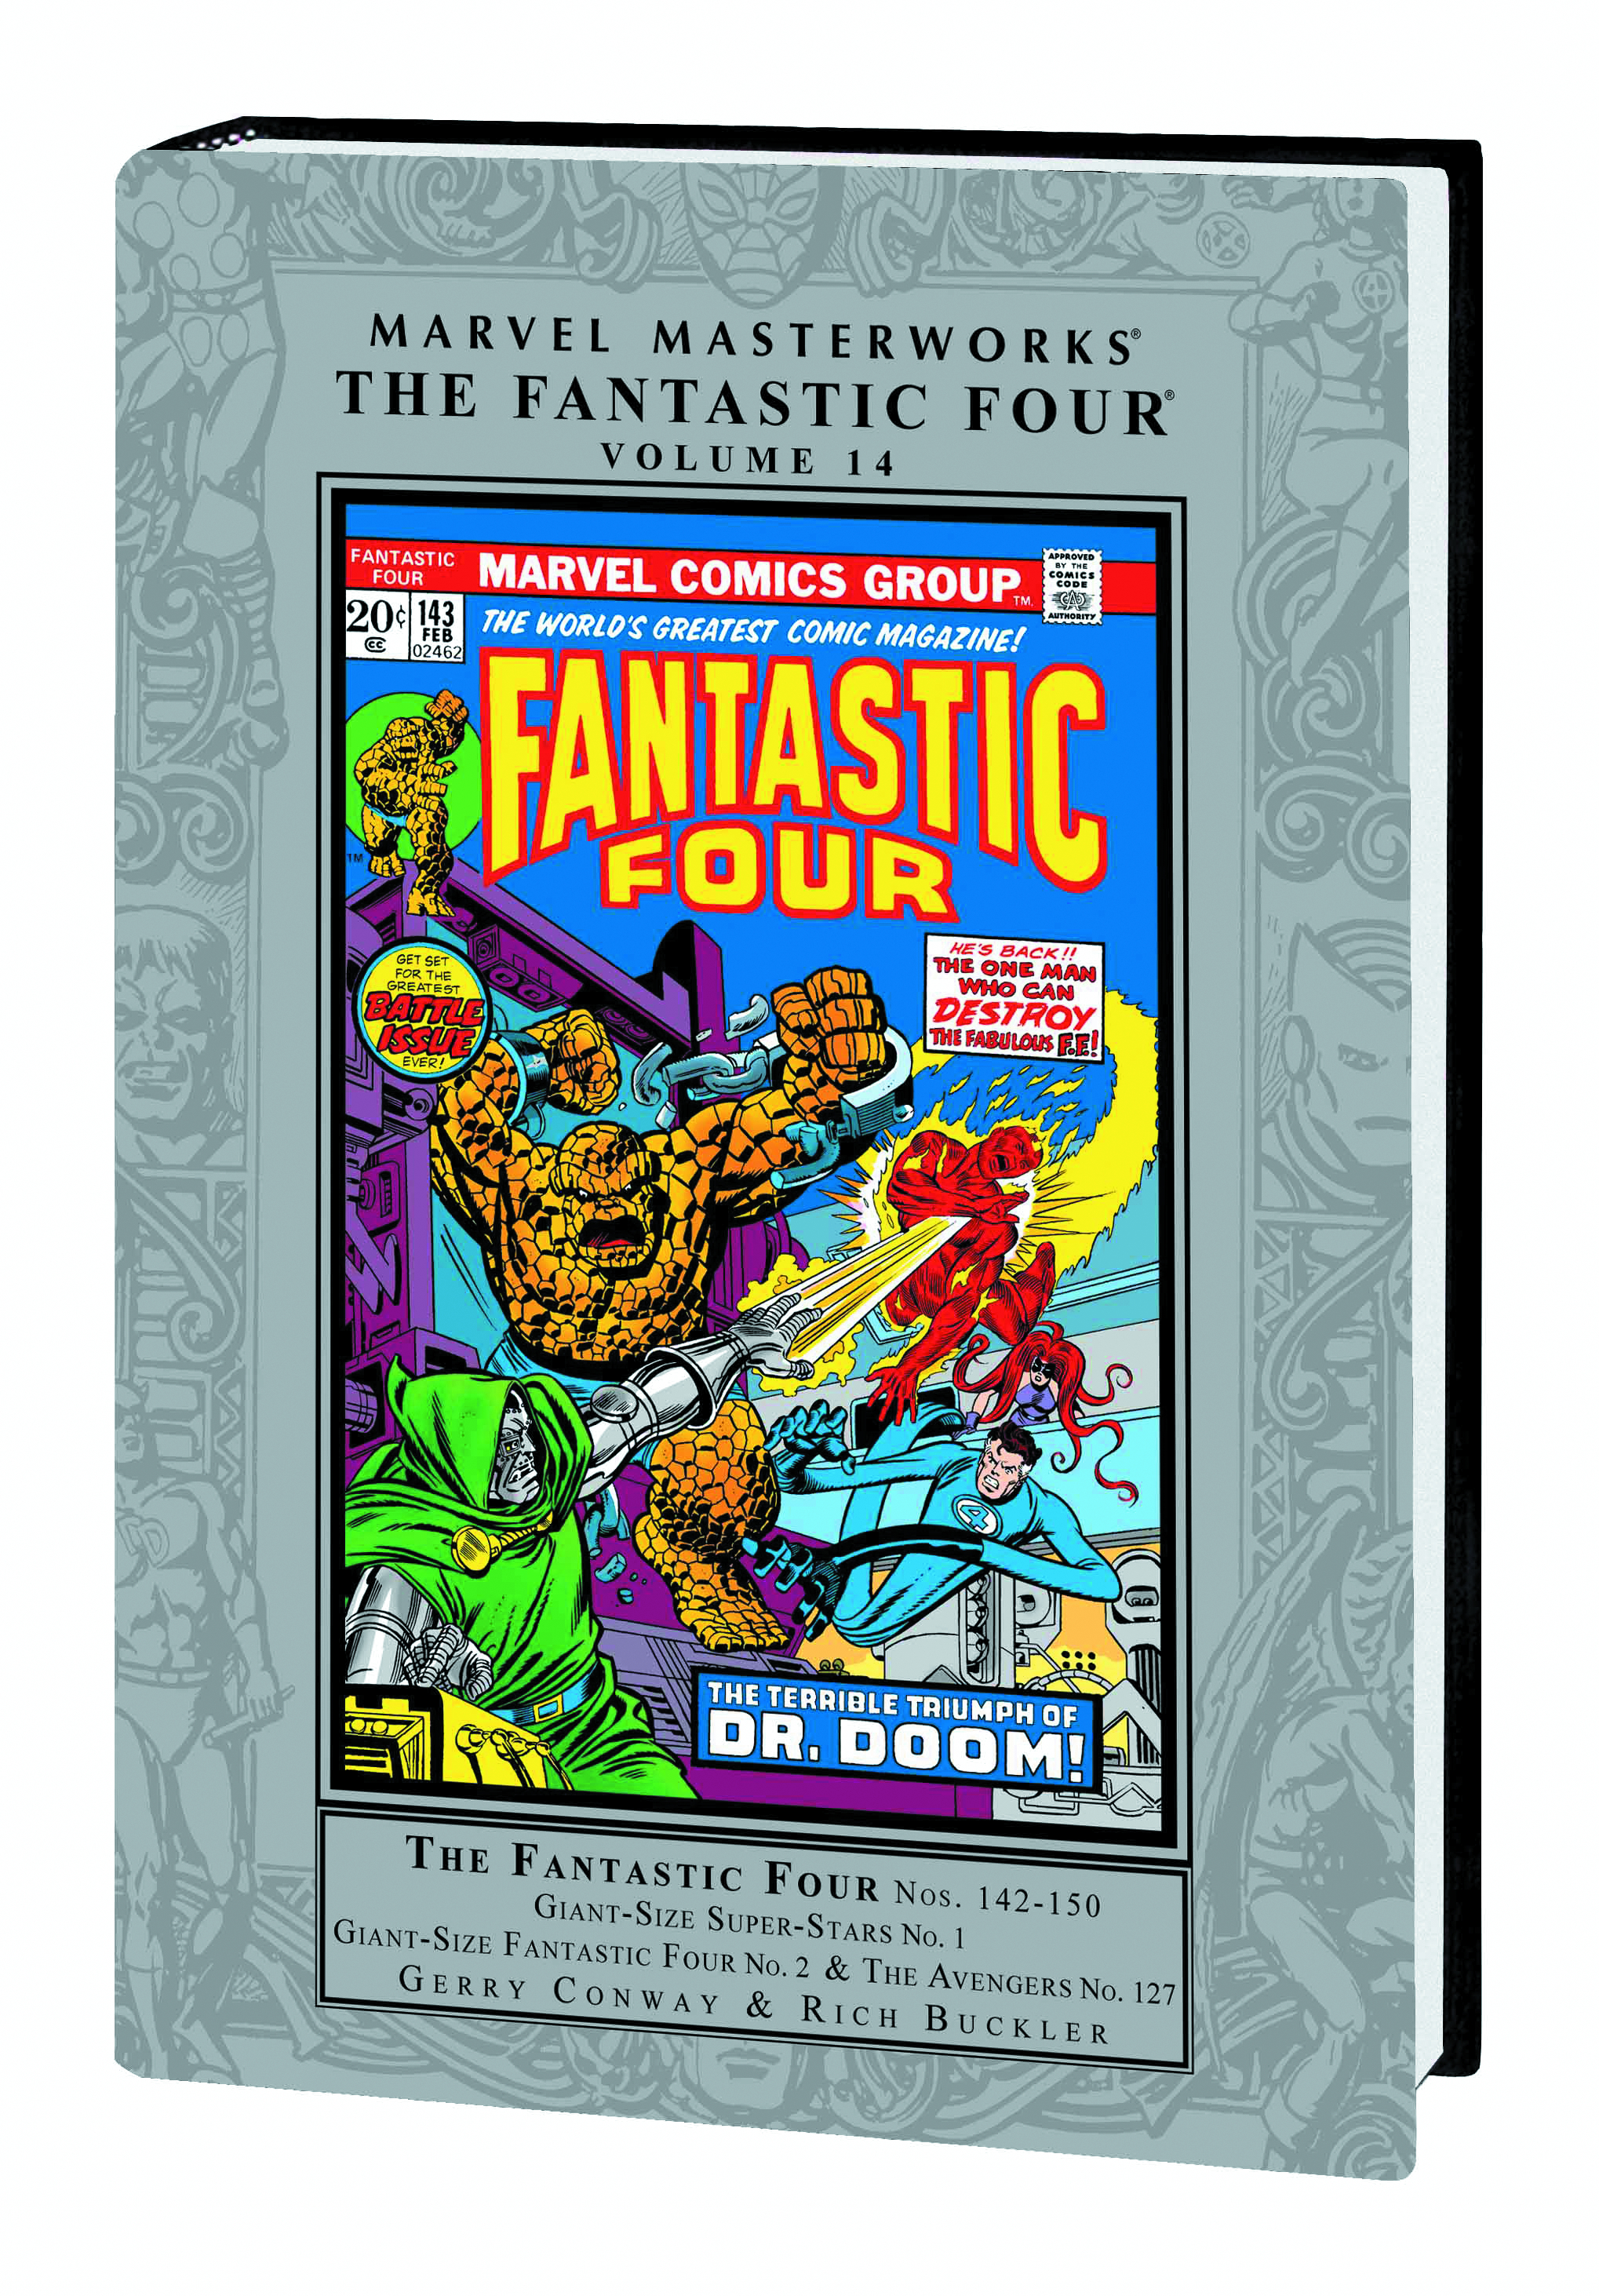 MMW FANTASTIC FOUR HC VOL 14